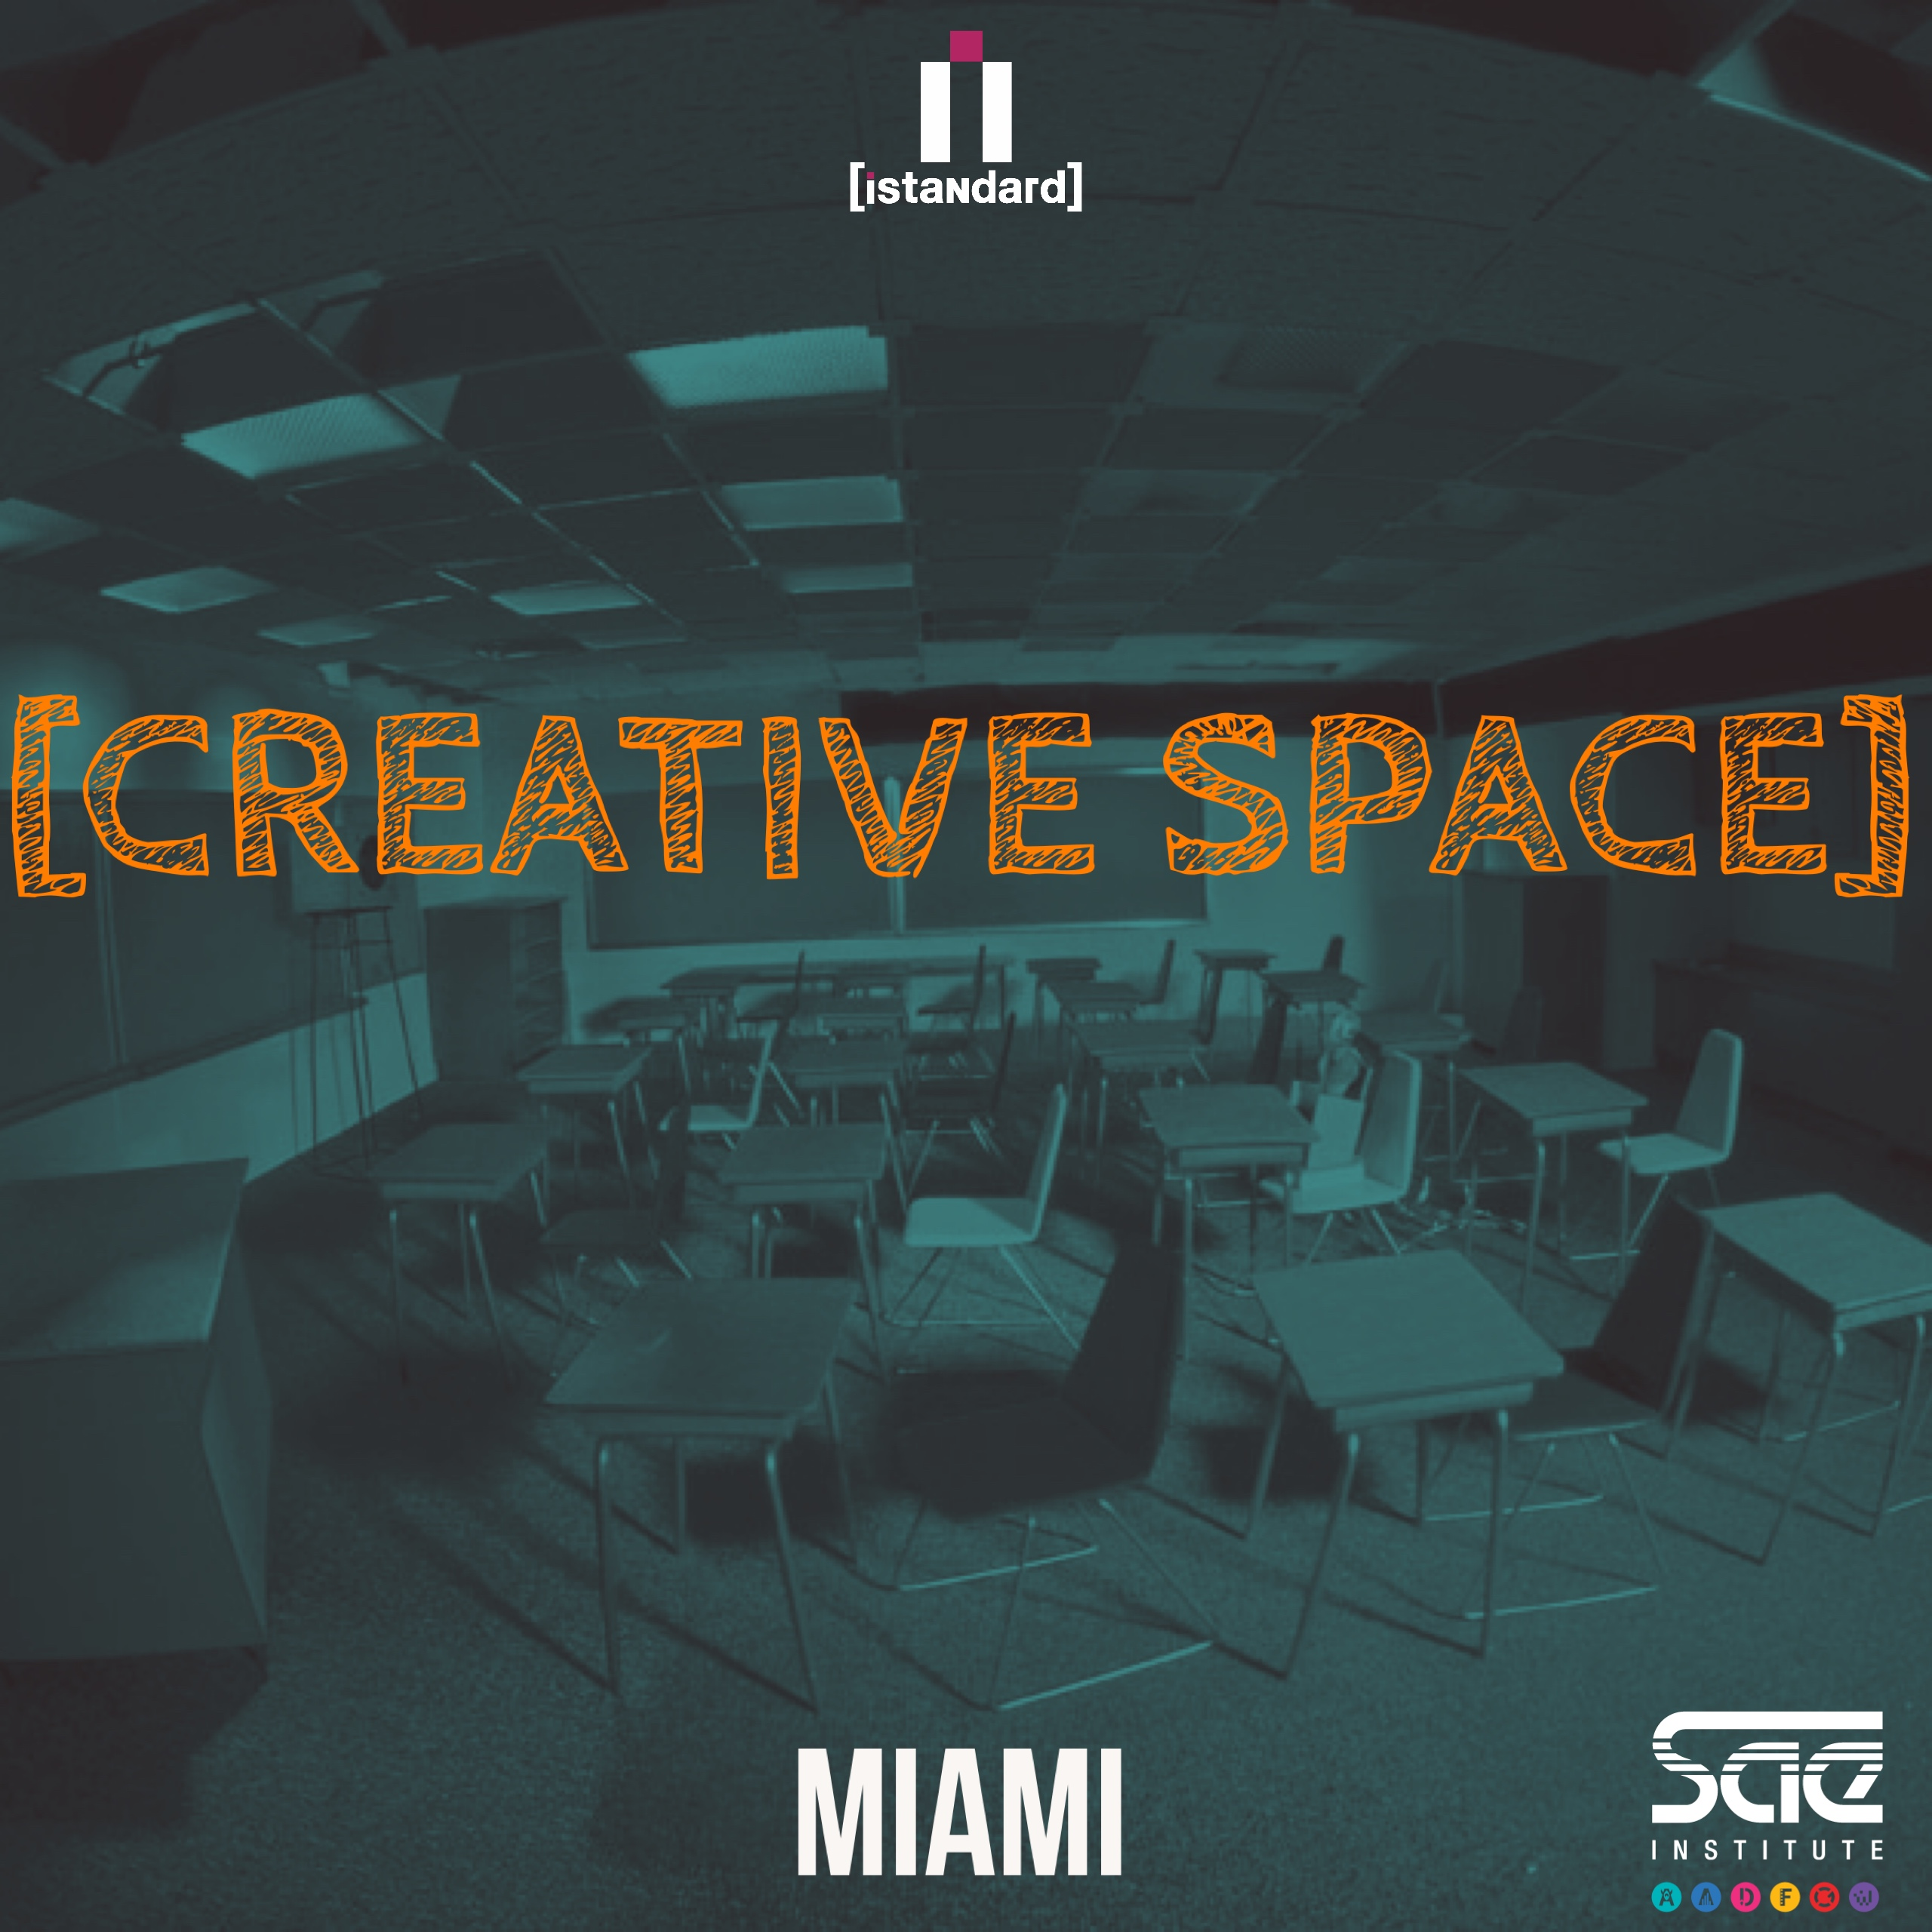 Miami [creative space] #PreparingForTheStudio - Events